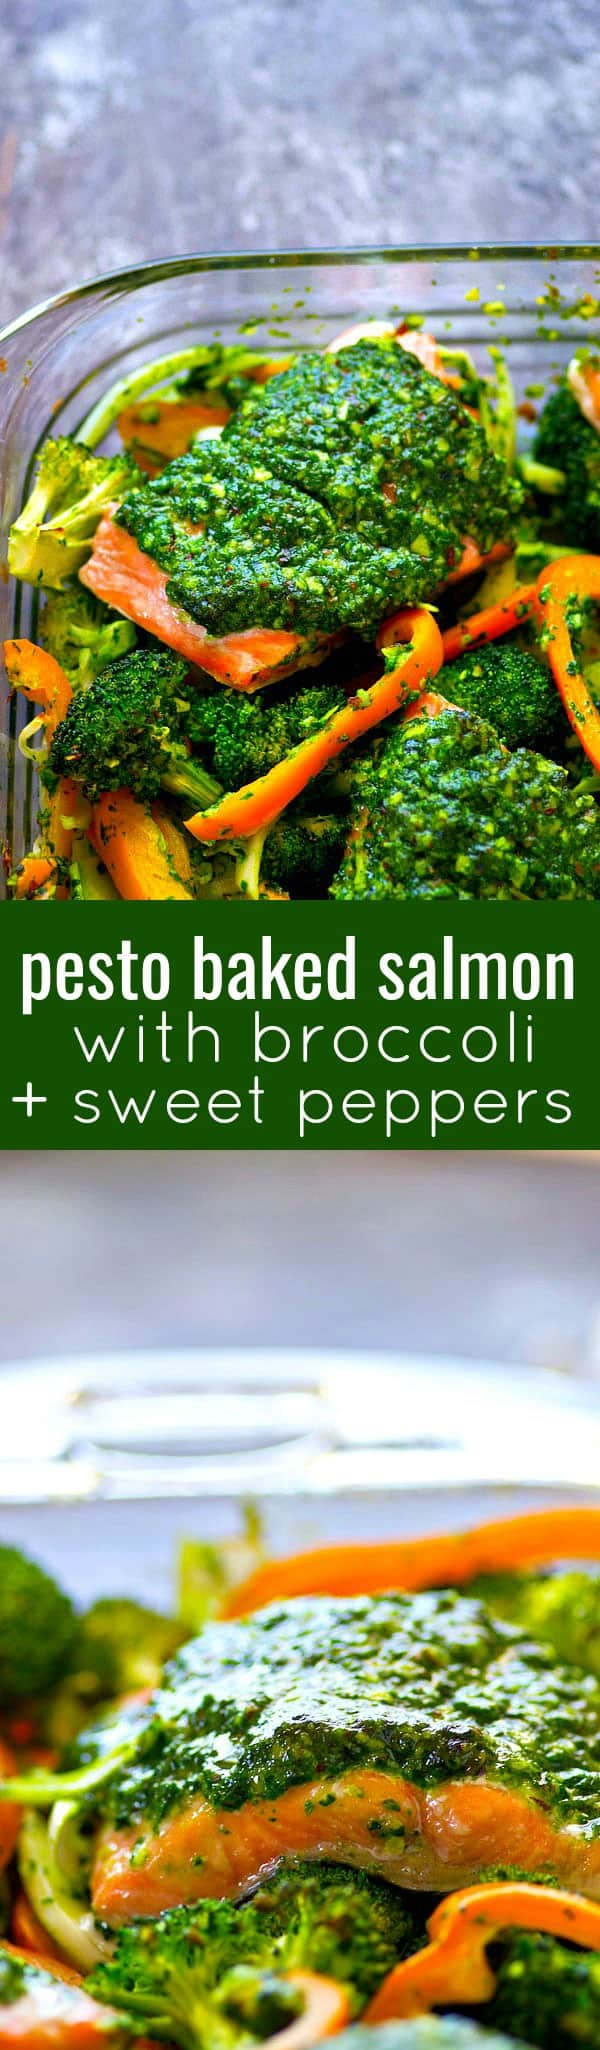 Smothered in flavorful basil pesto and roasted with broccoli and sweet peppers, this pesto baked salmon is on the dinner table in MINUTES and super filling, yet light on the carbs!